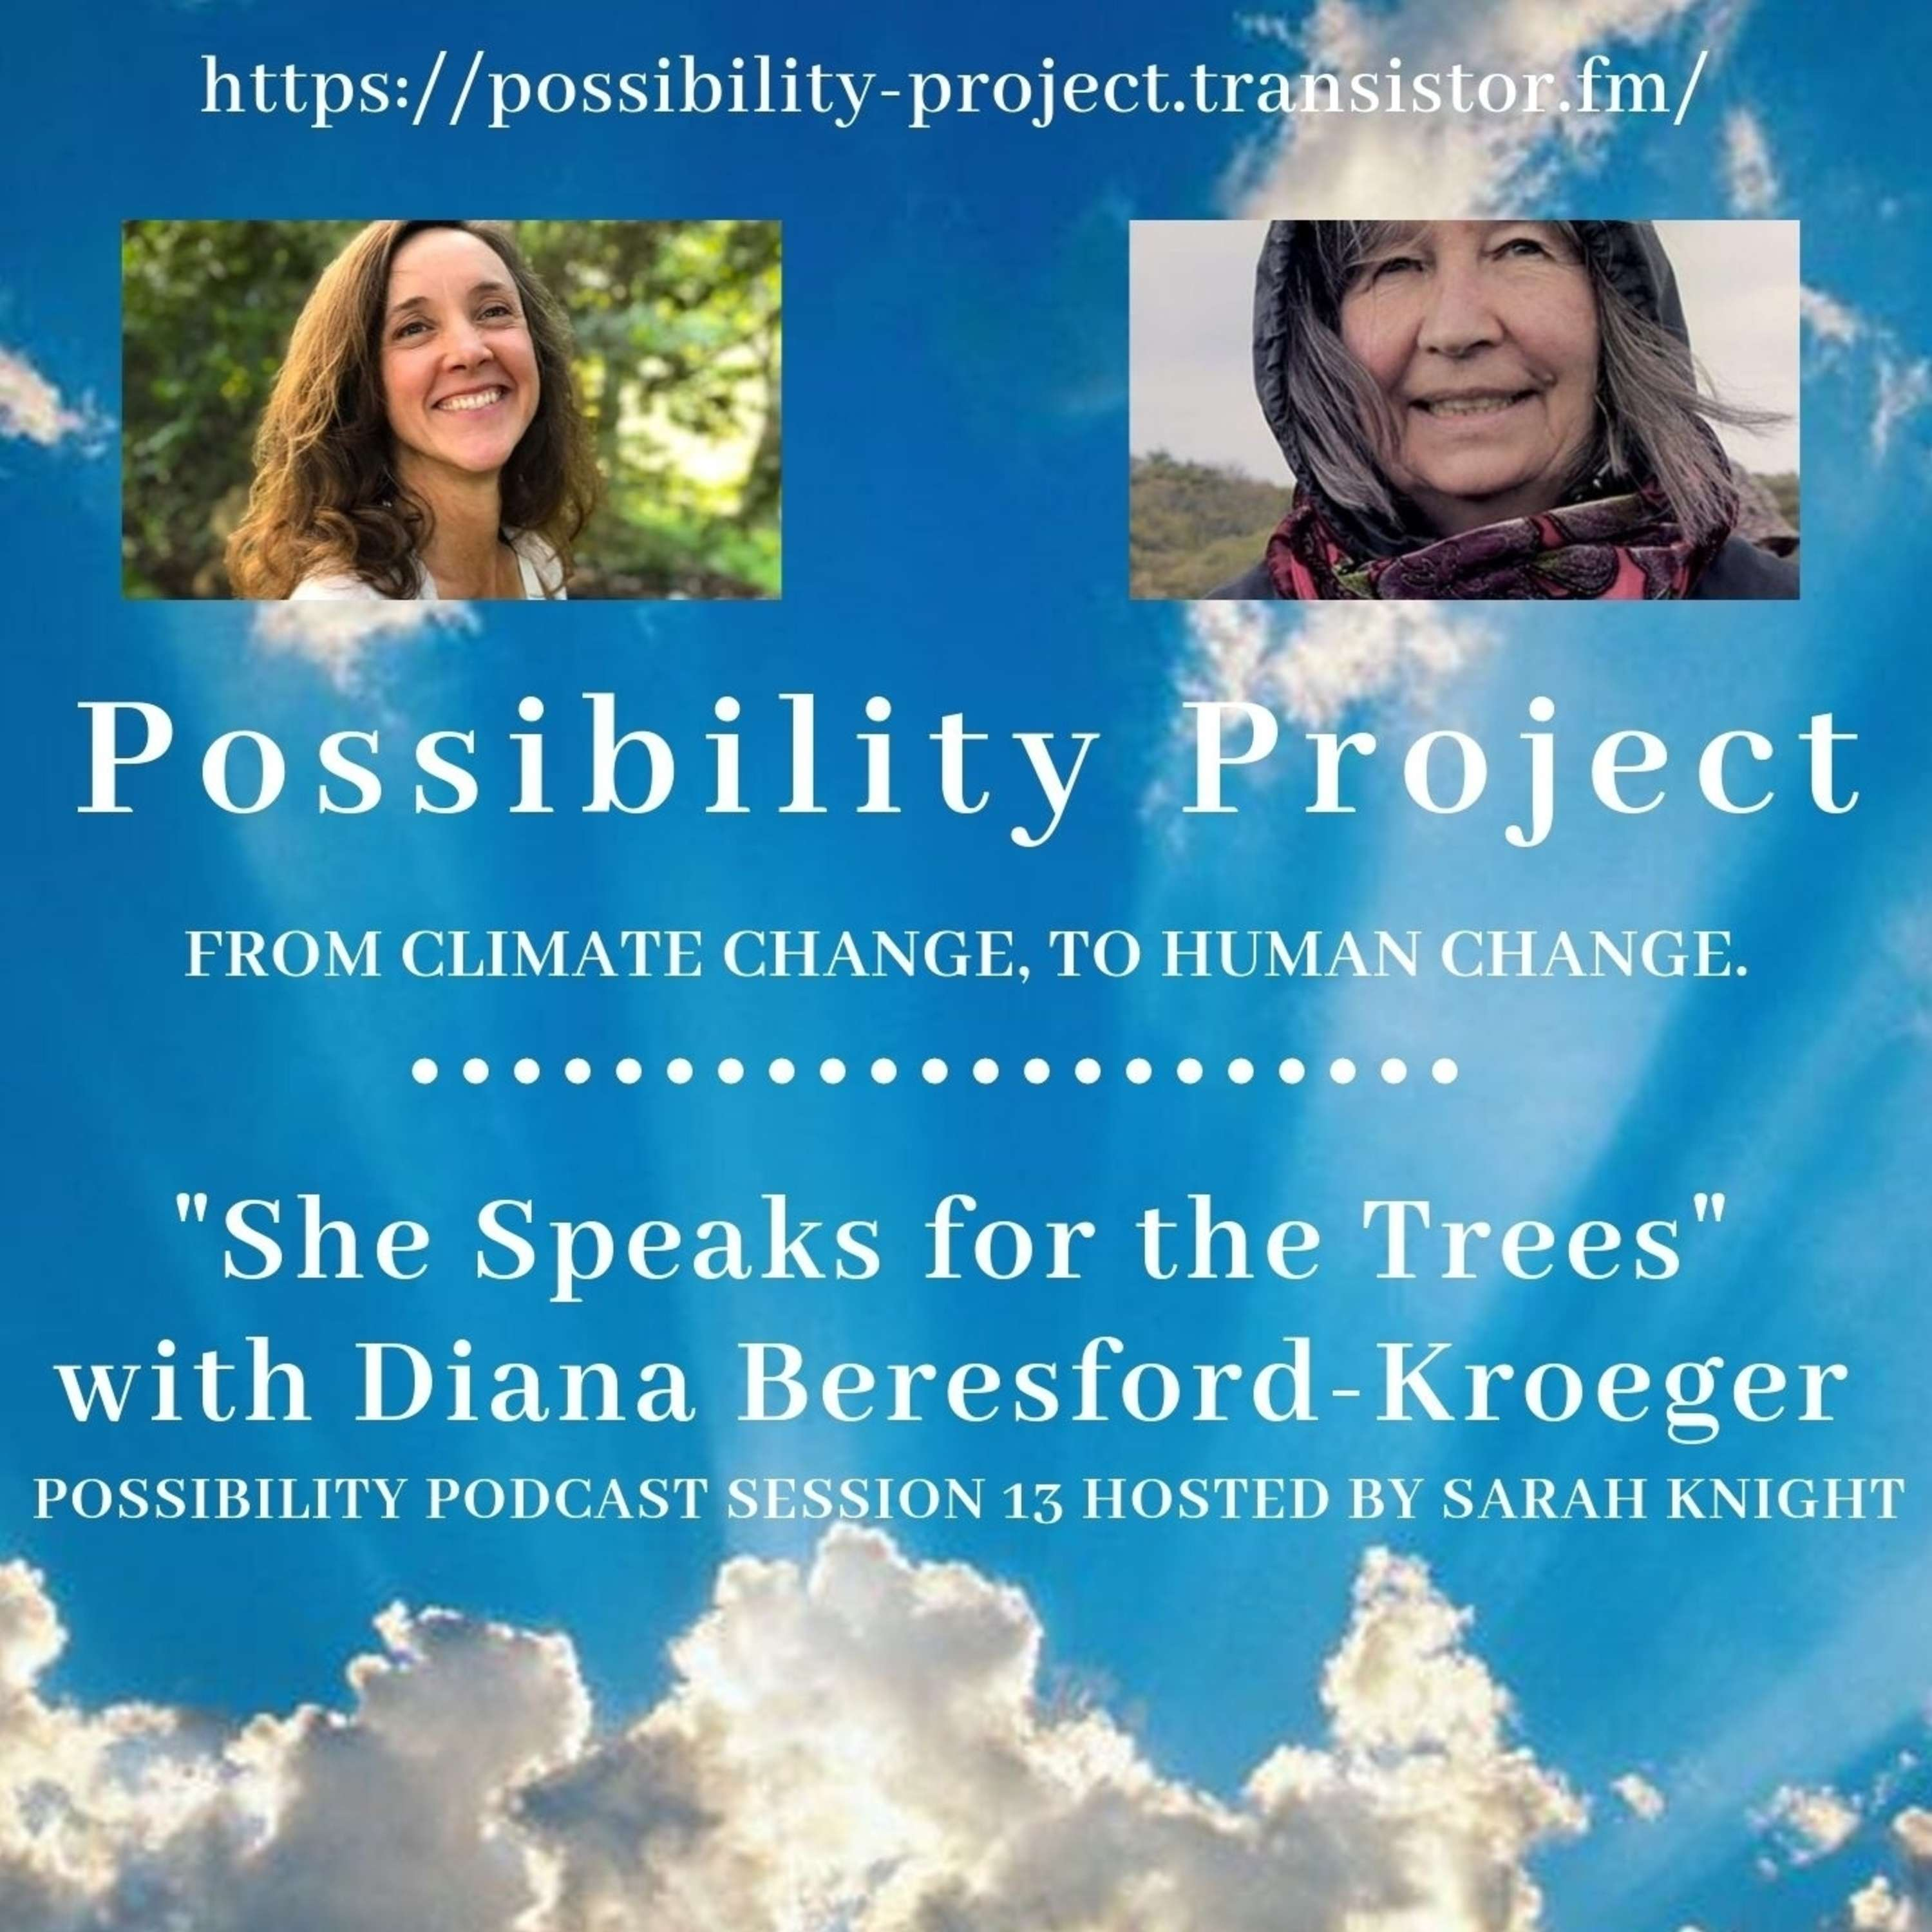 She Speaks for the Trees, with Diana Beresford-Kroeger. Possibility Podcast Session 13